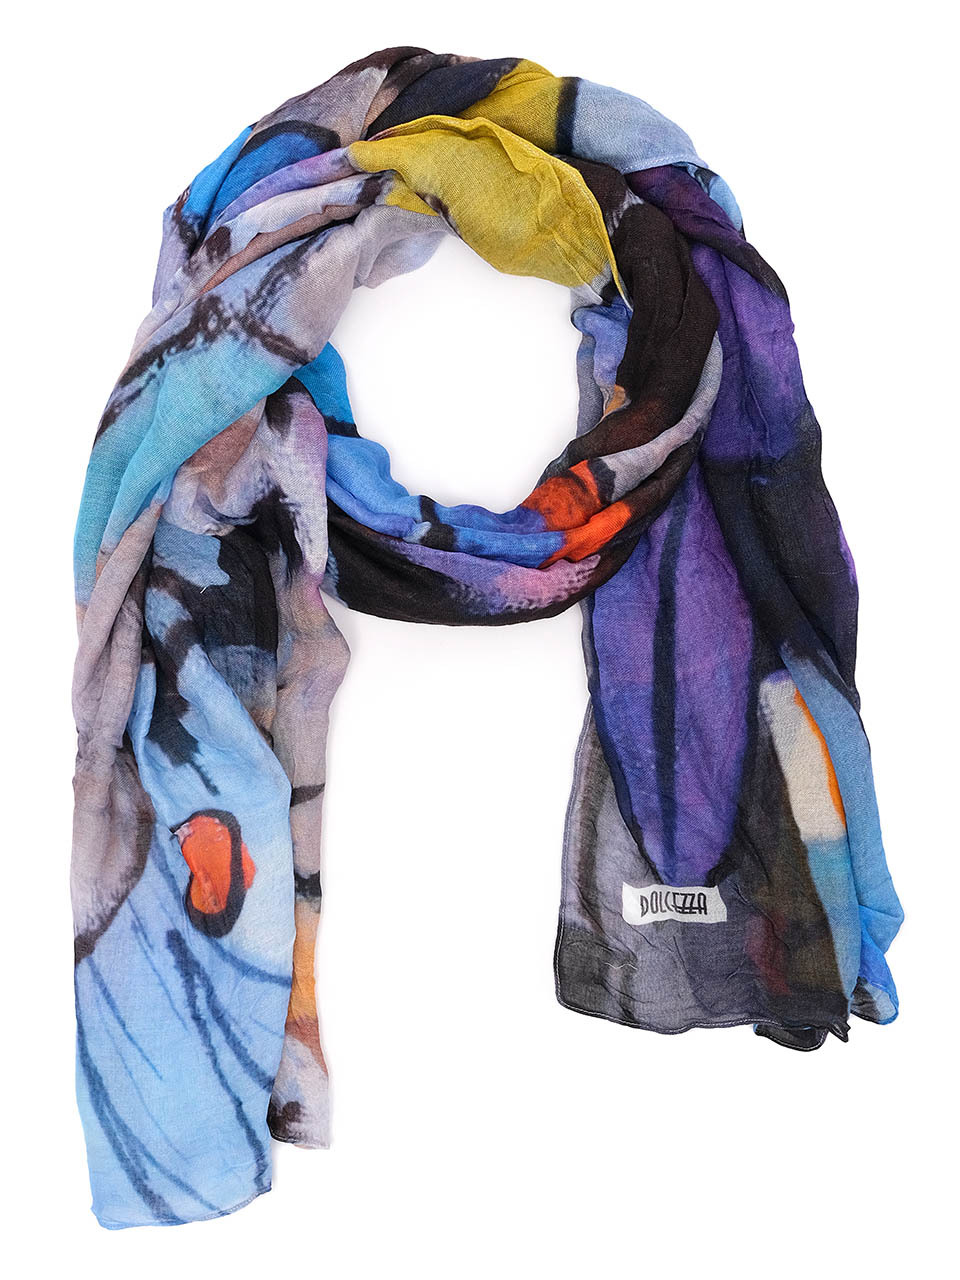 Simply Art Dolcezza: Still Life Abstract Art Scarf (2 Left!)